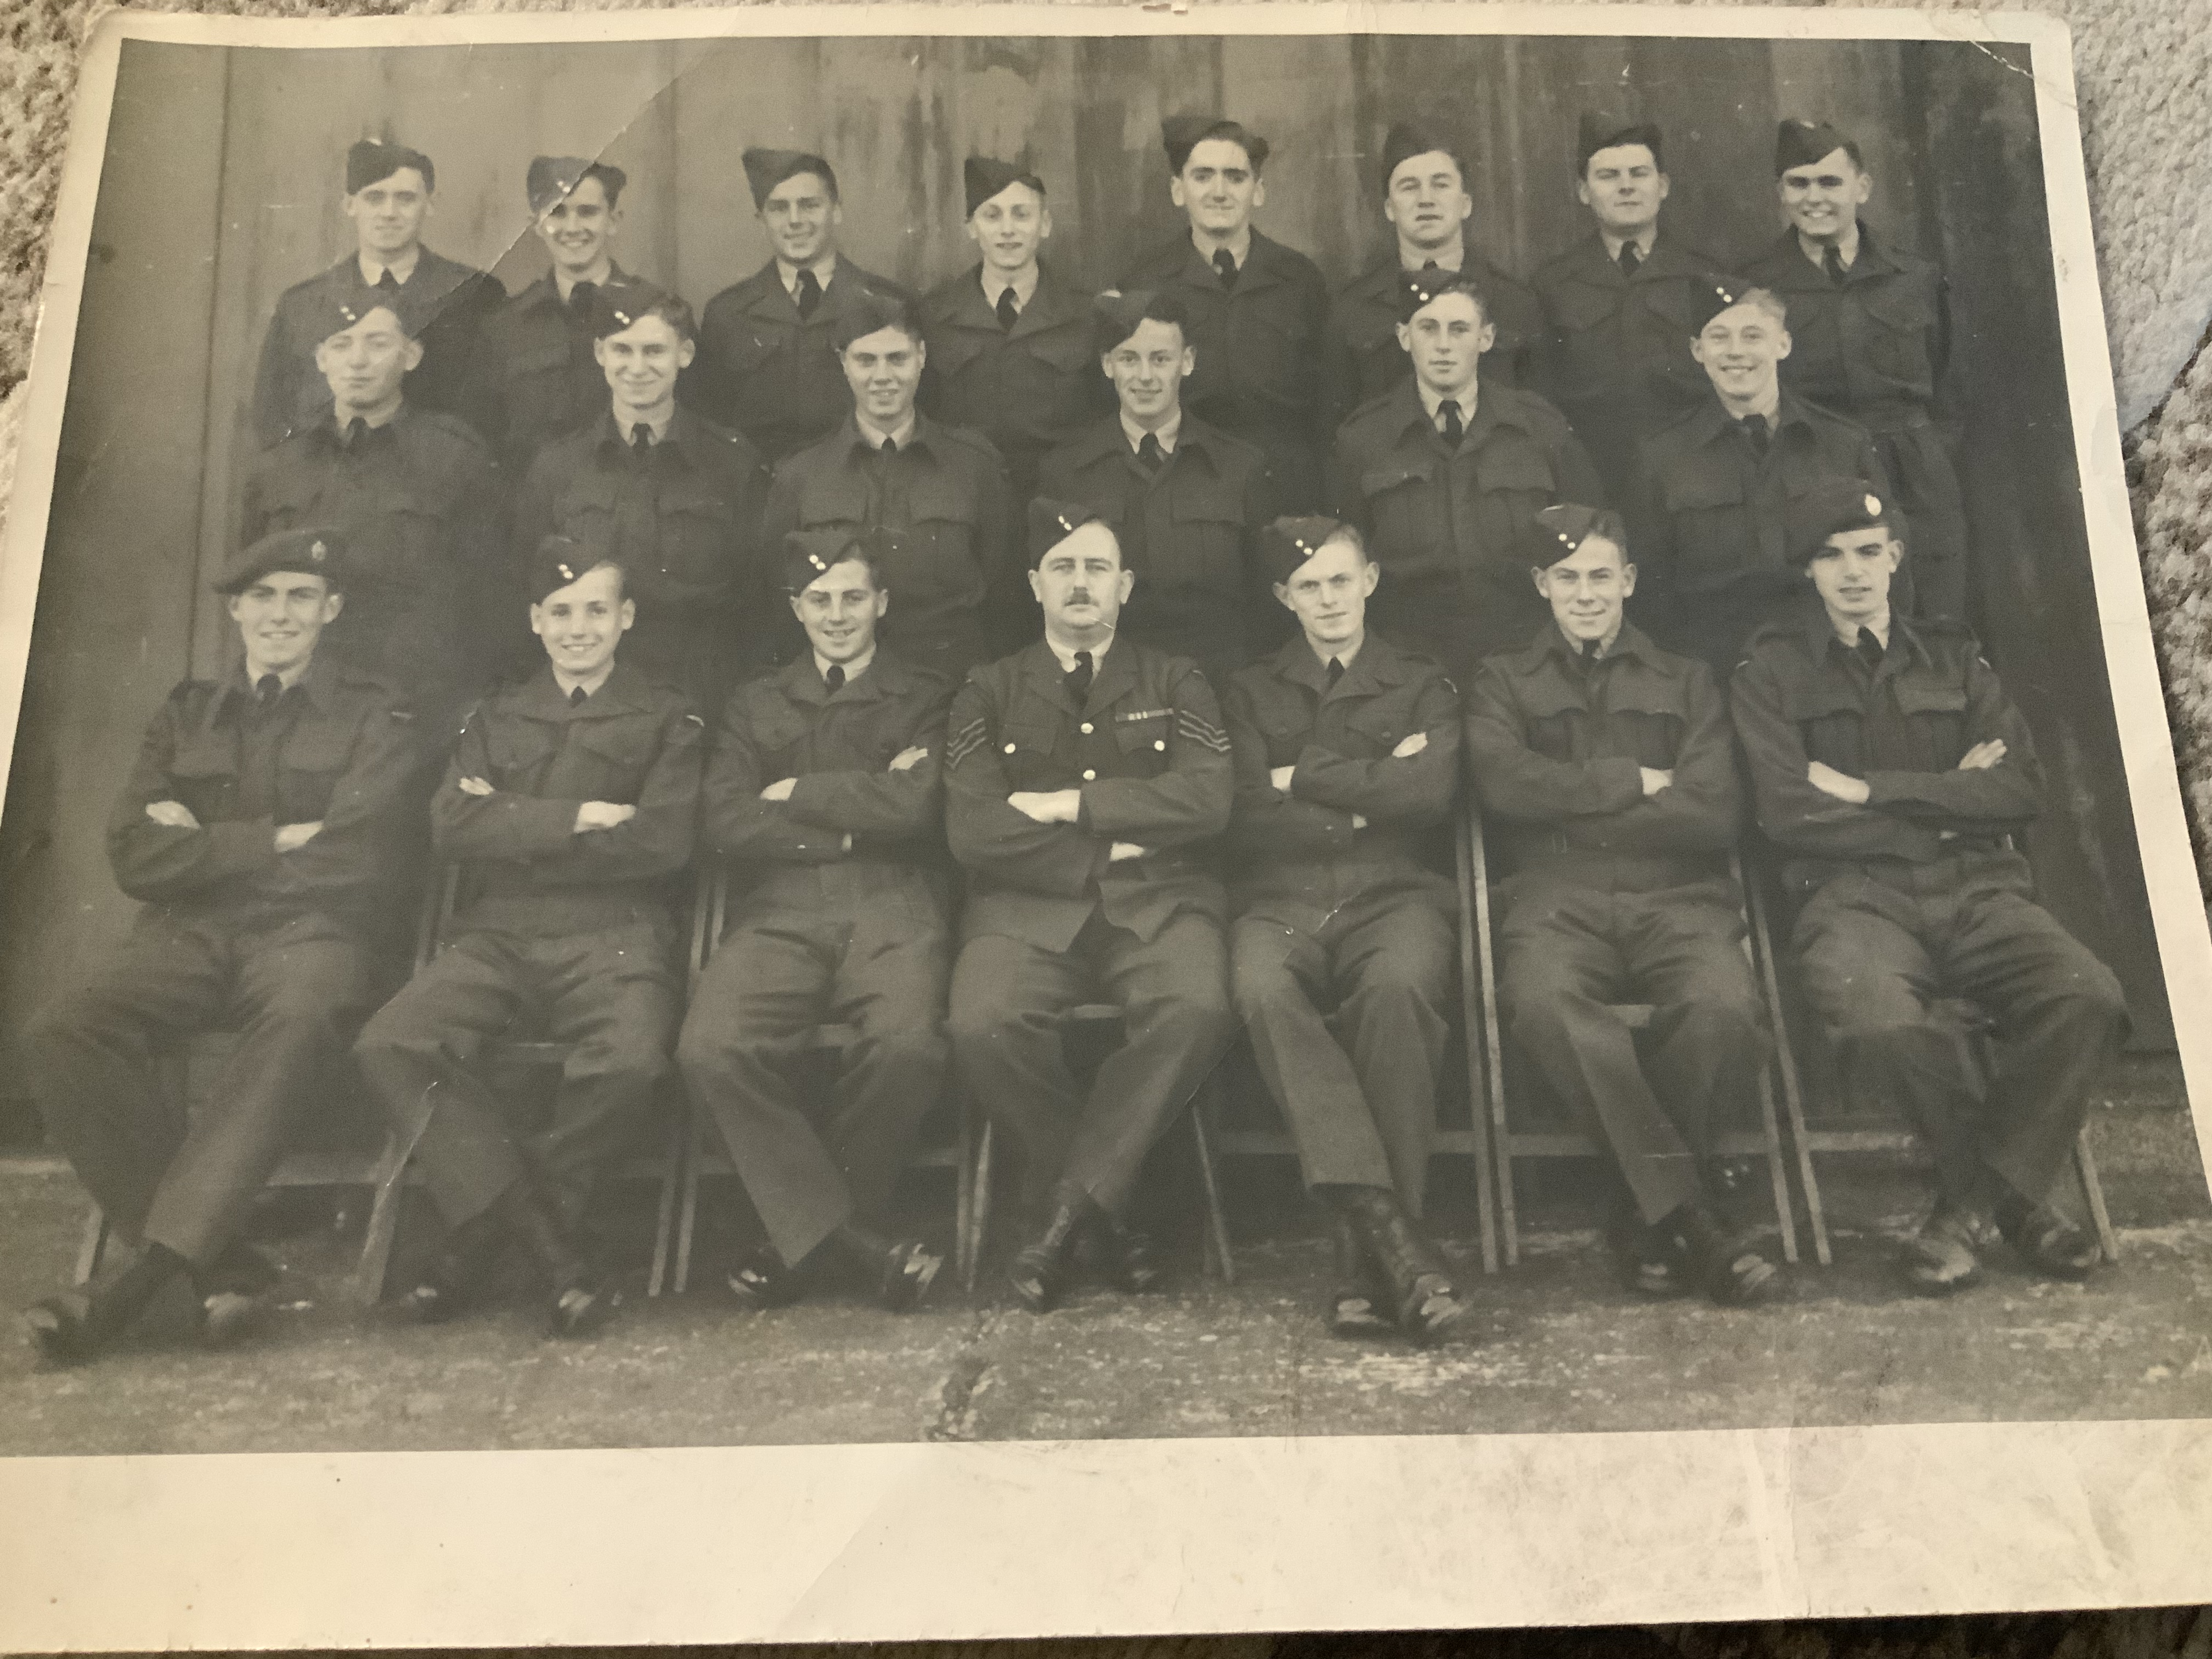 Course 80. Class 'c'. R.A.F Station Wythall.